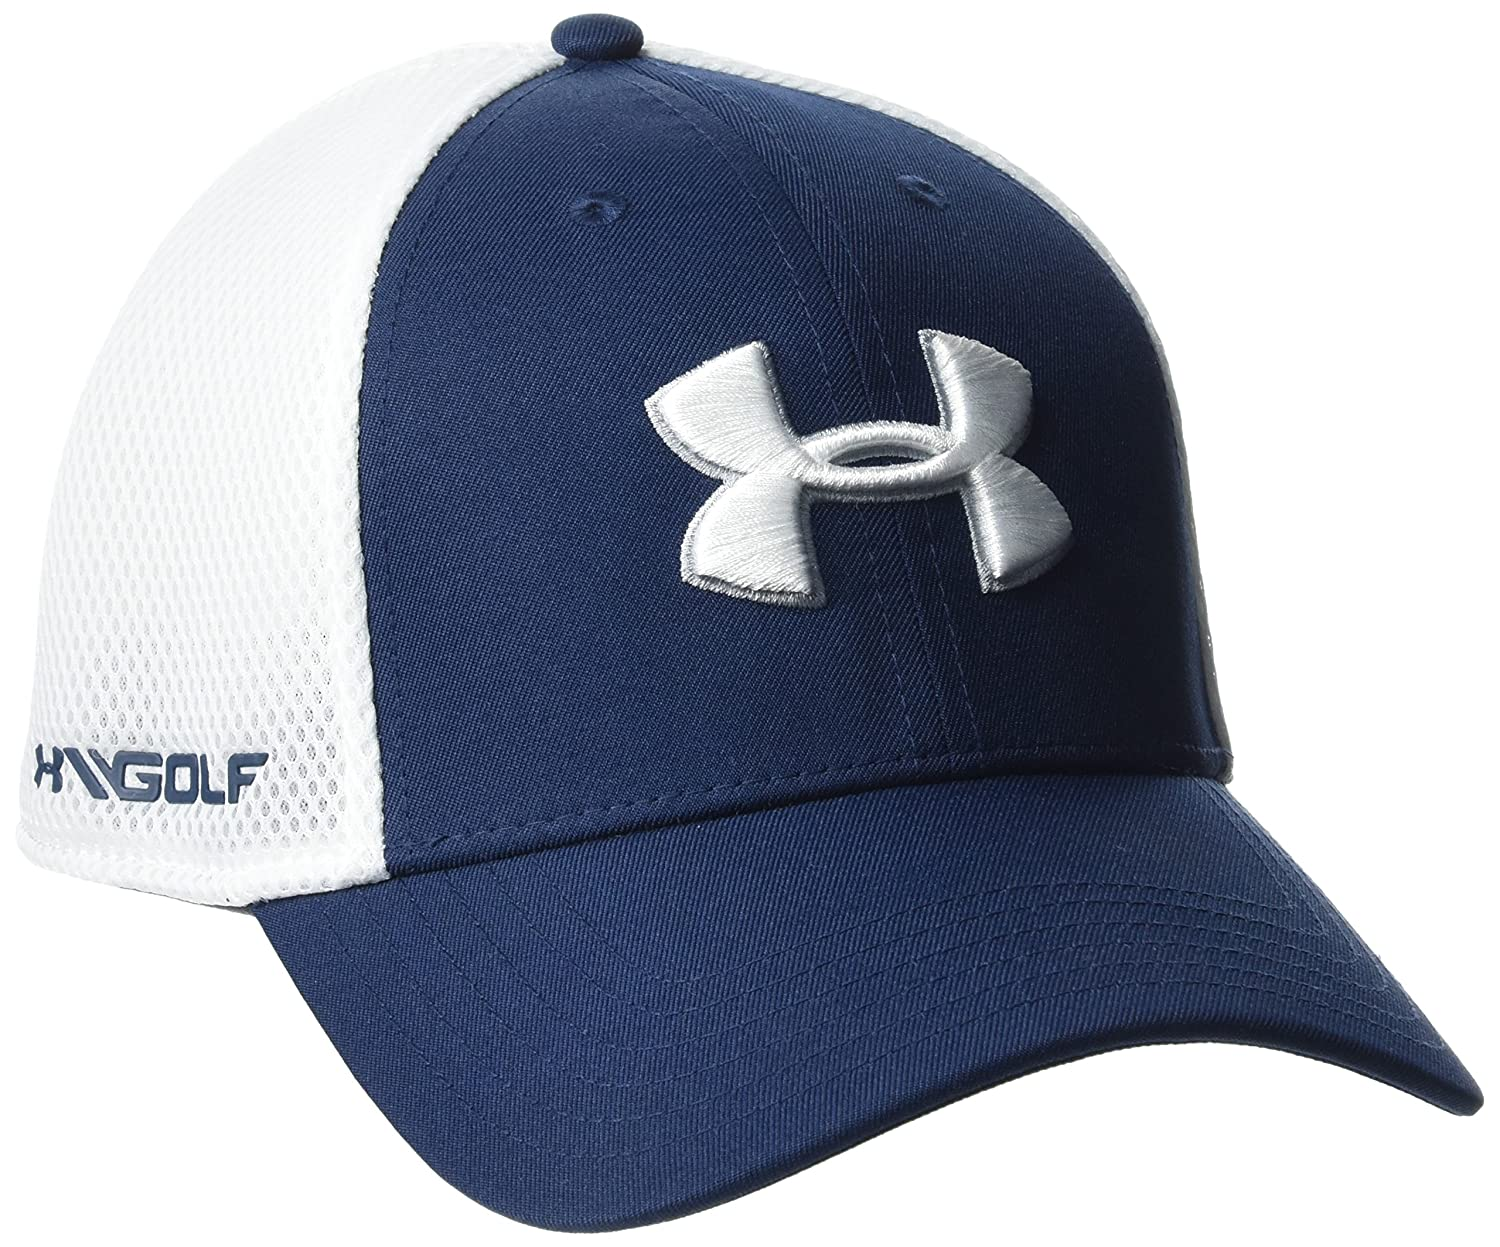 02a02953443 Amazon.com  Under Armour Men s Golf Mesh Stretch 2.0 Cap  Sports   Outdoors